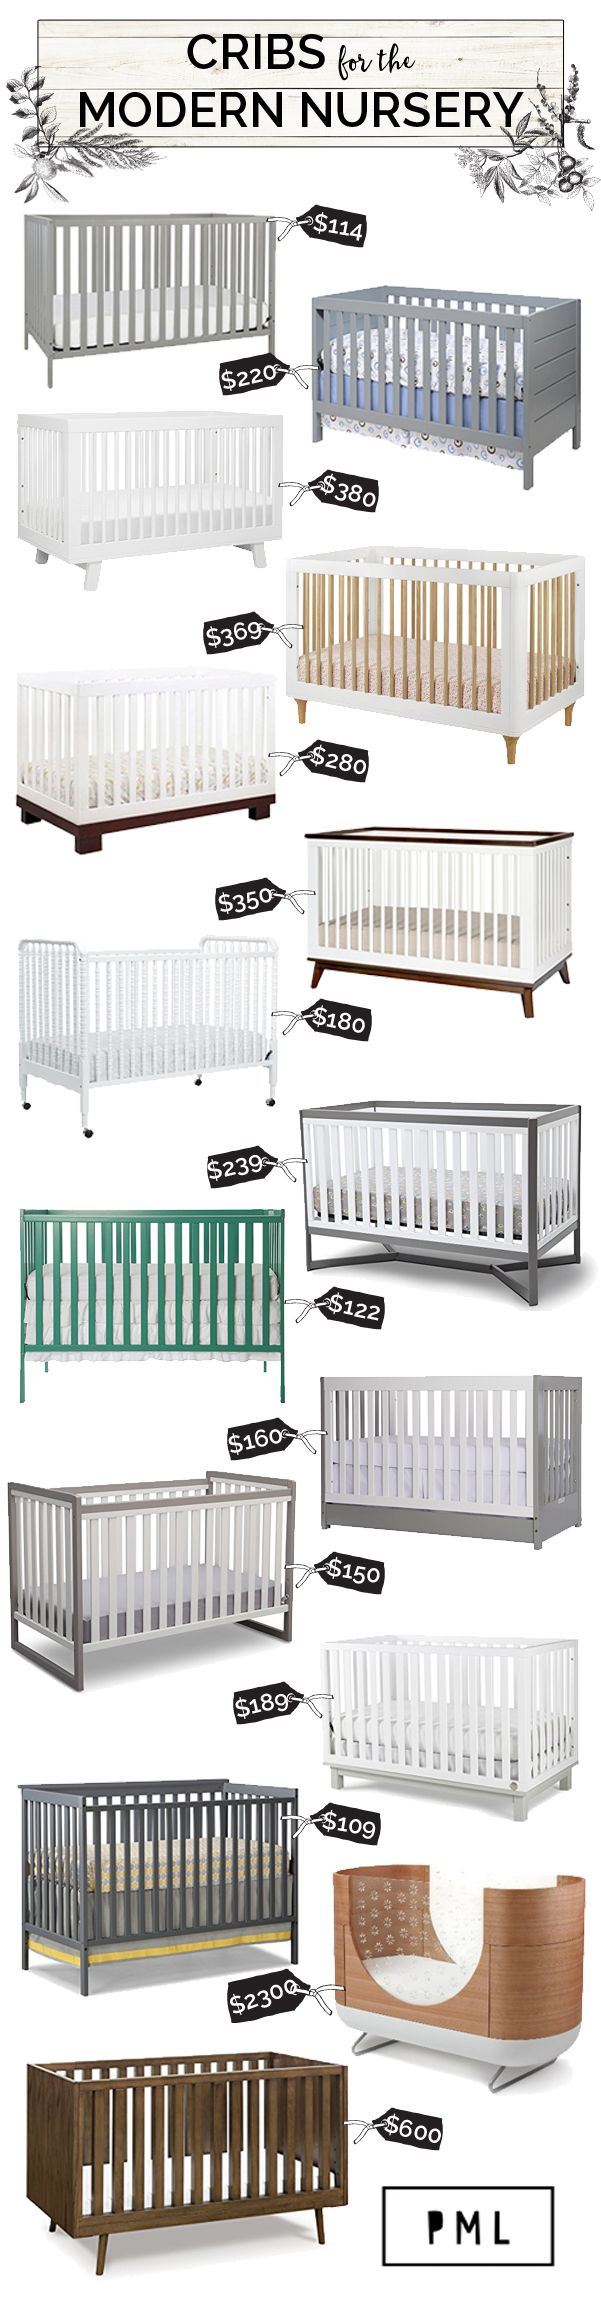 Cribs for the modern nursery | Petite Modern Life